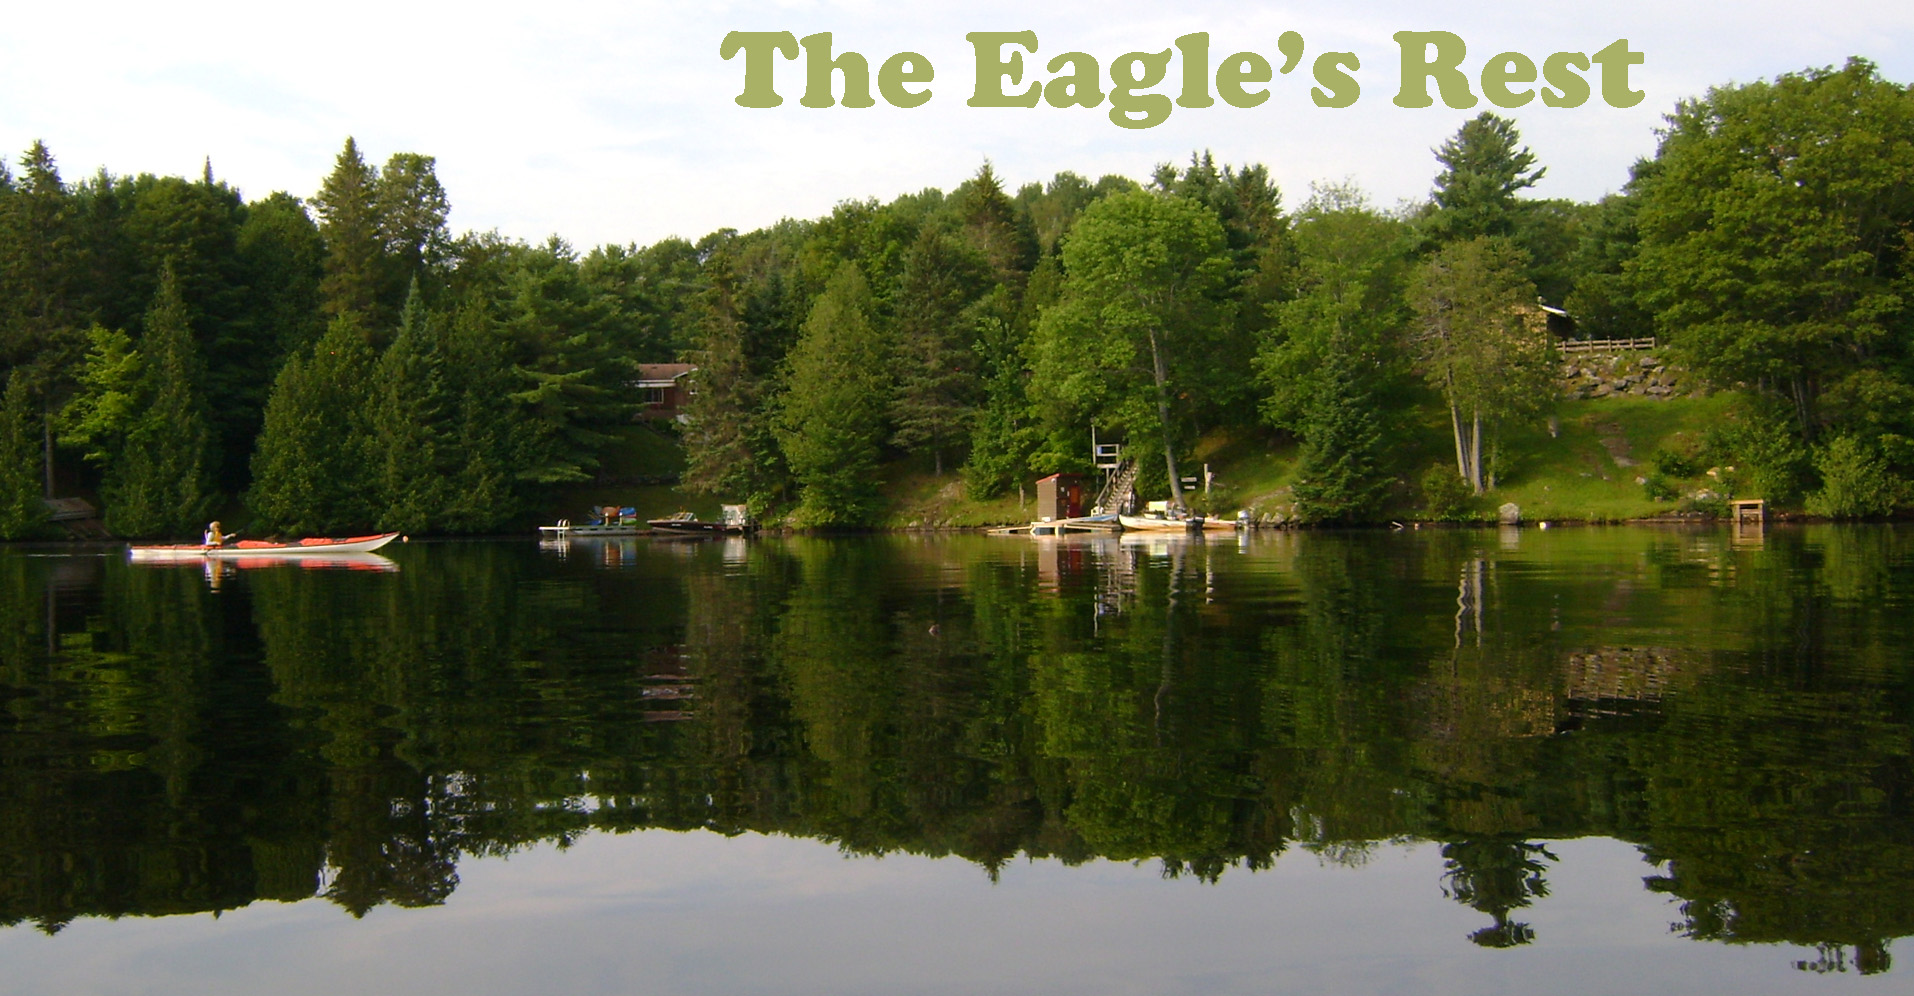 The Eagle's Rest from the water